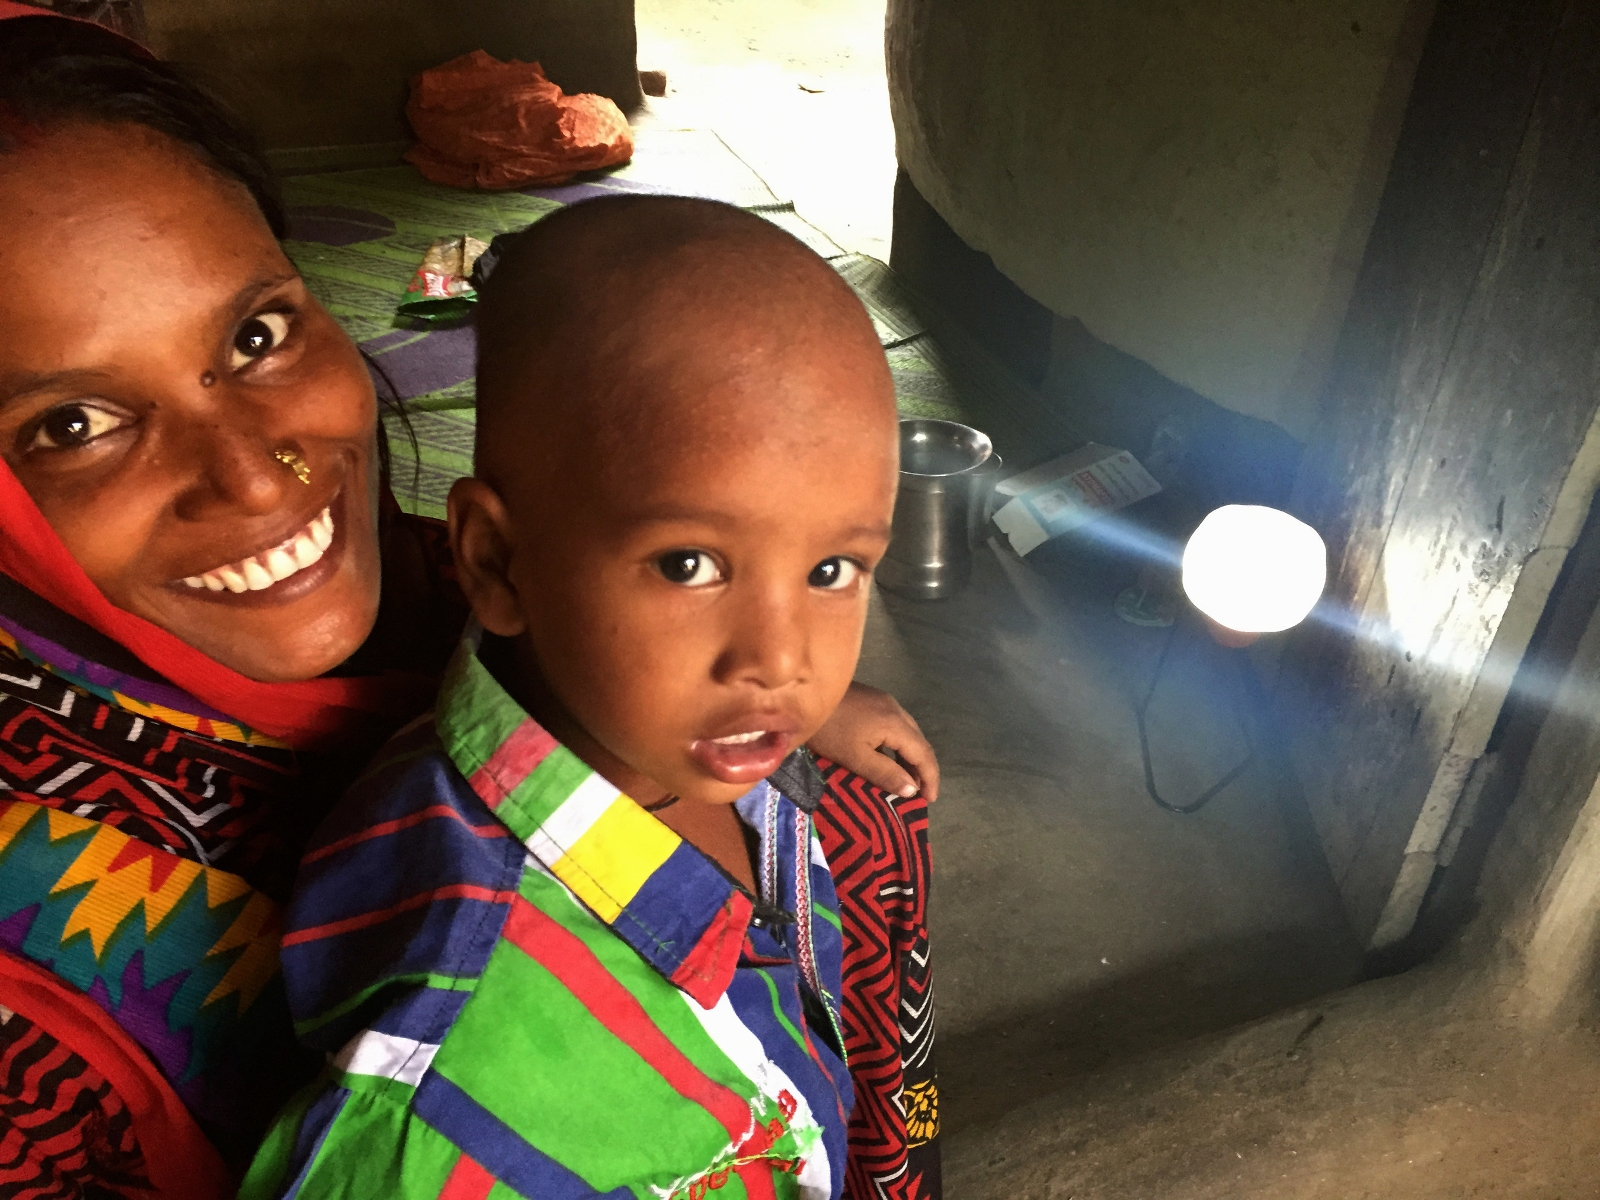 d.light has raised another US$7.5 million, bringing their total for the year to US$30 million, allowing them to massively scale their solar lantern and PayGo financing solutions for base-of-the-pyramid families. Source: d.light